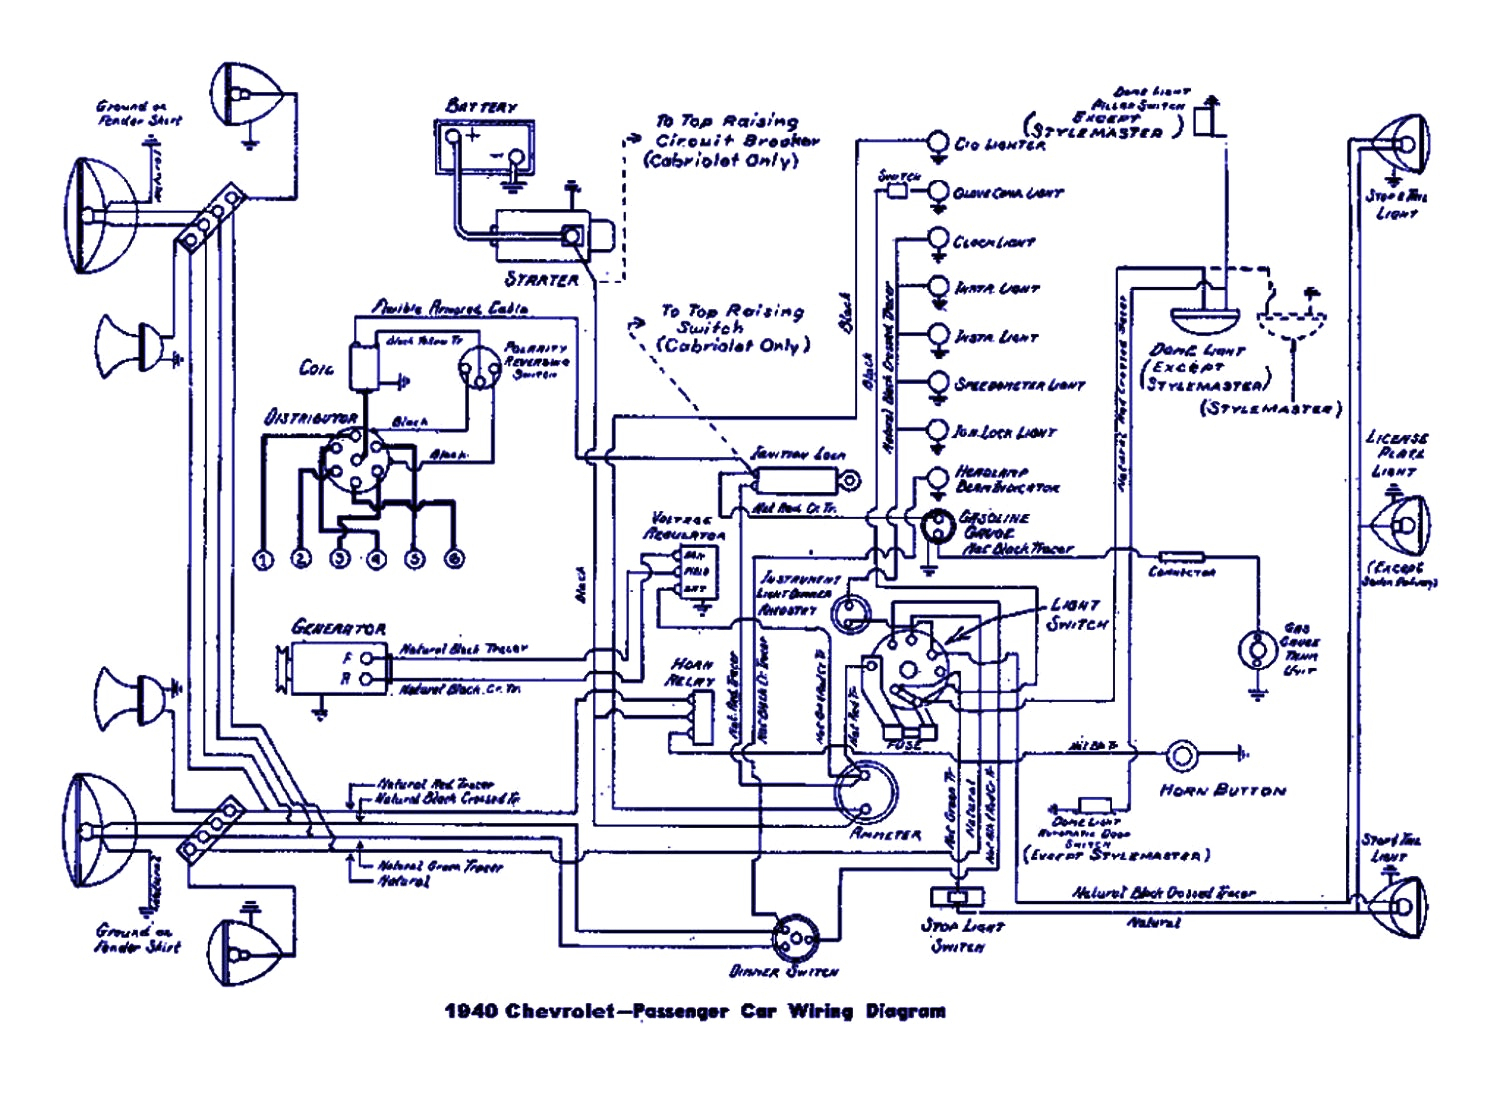 99 ezgo gas wiring diagram 1993 ezgo txt wiring diagram pro wiring diagram  1993 ezgo txt wiring diagram pro